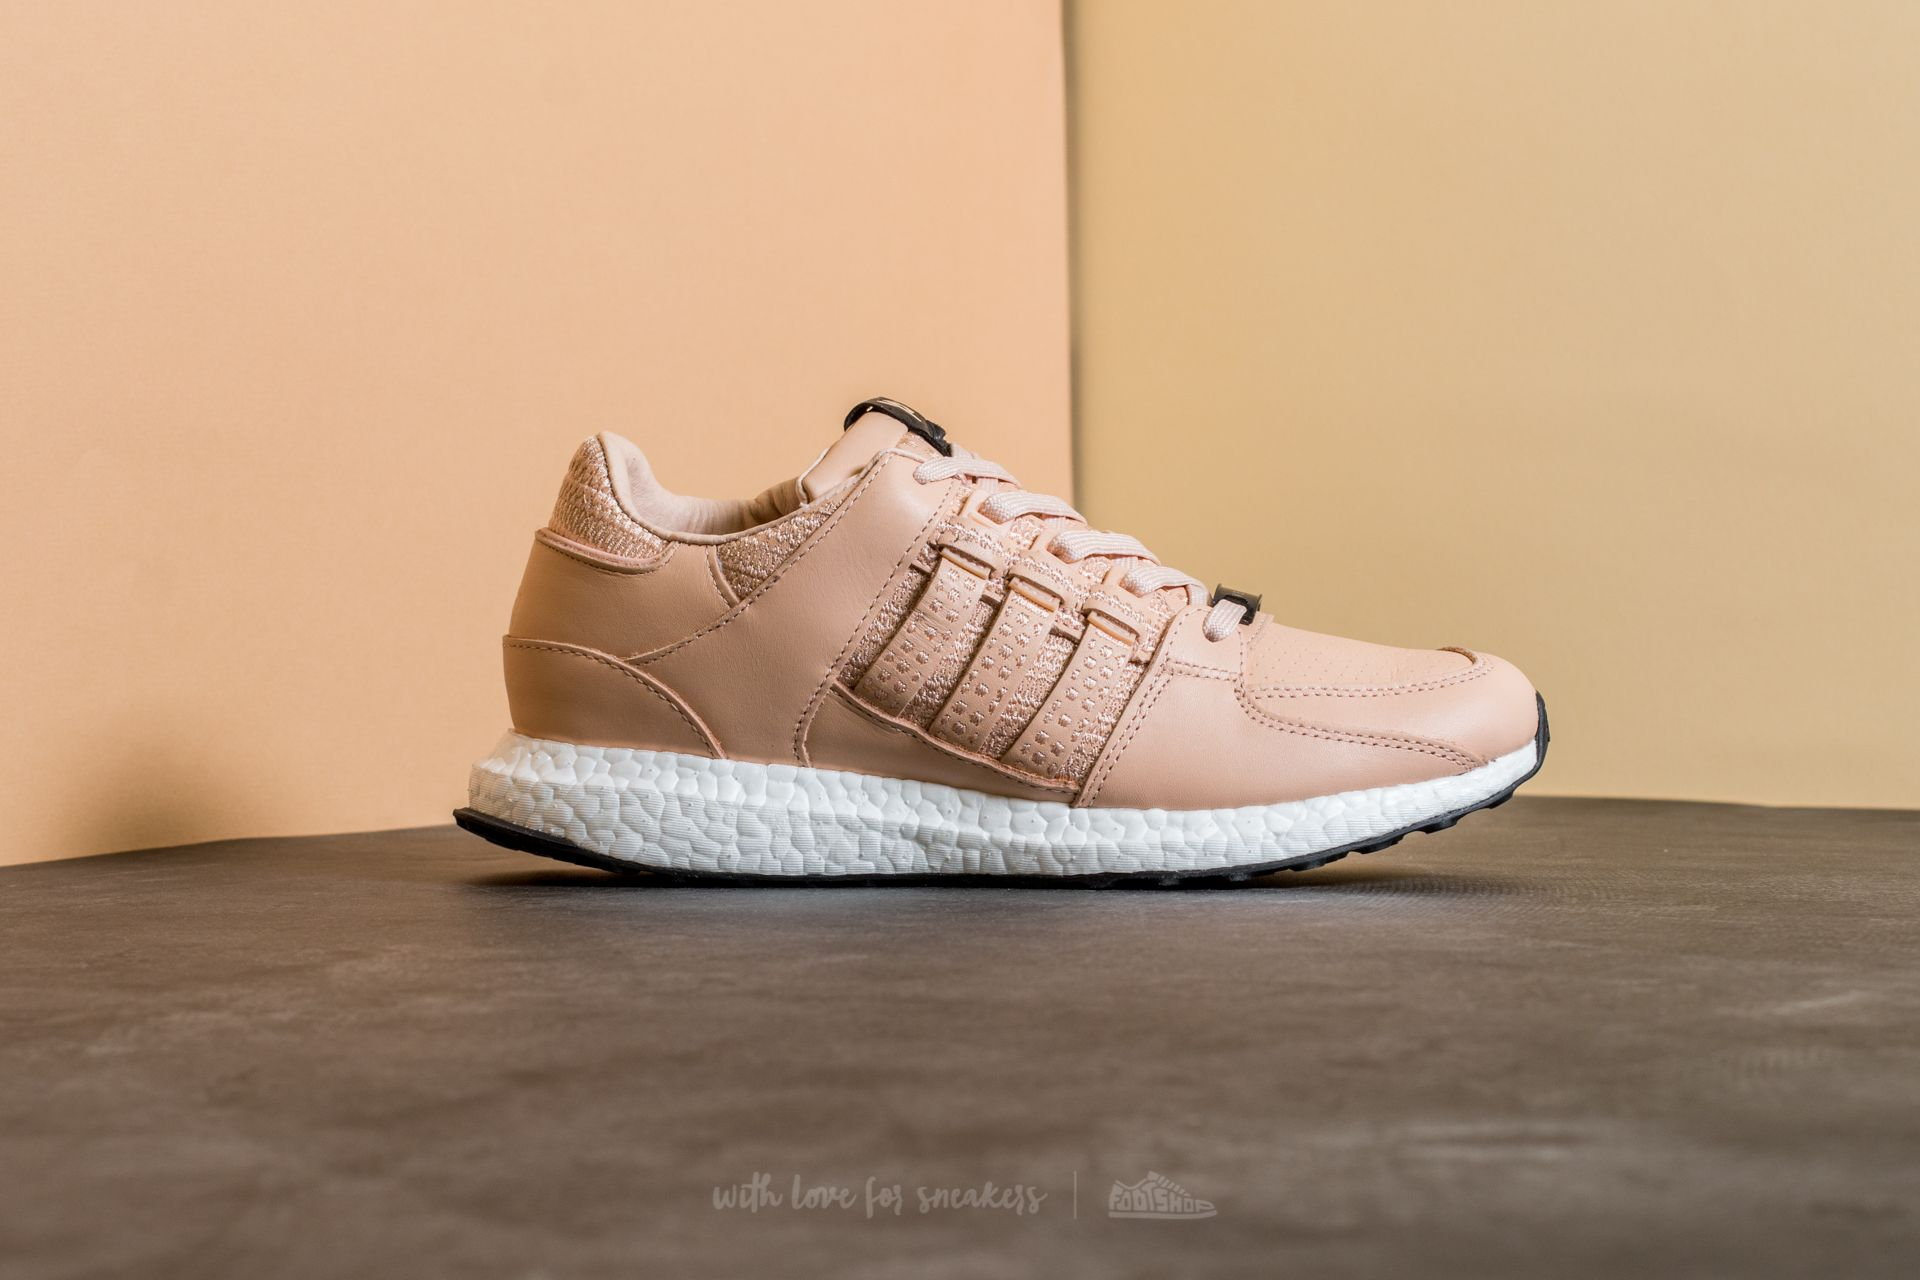 online store cbbc8 96f77 adidas x Consortium x Avenue Equipment Support 9316 AV Tan White at a